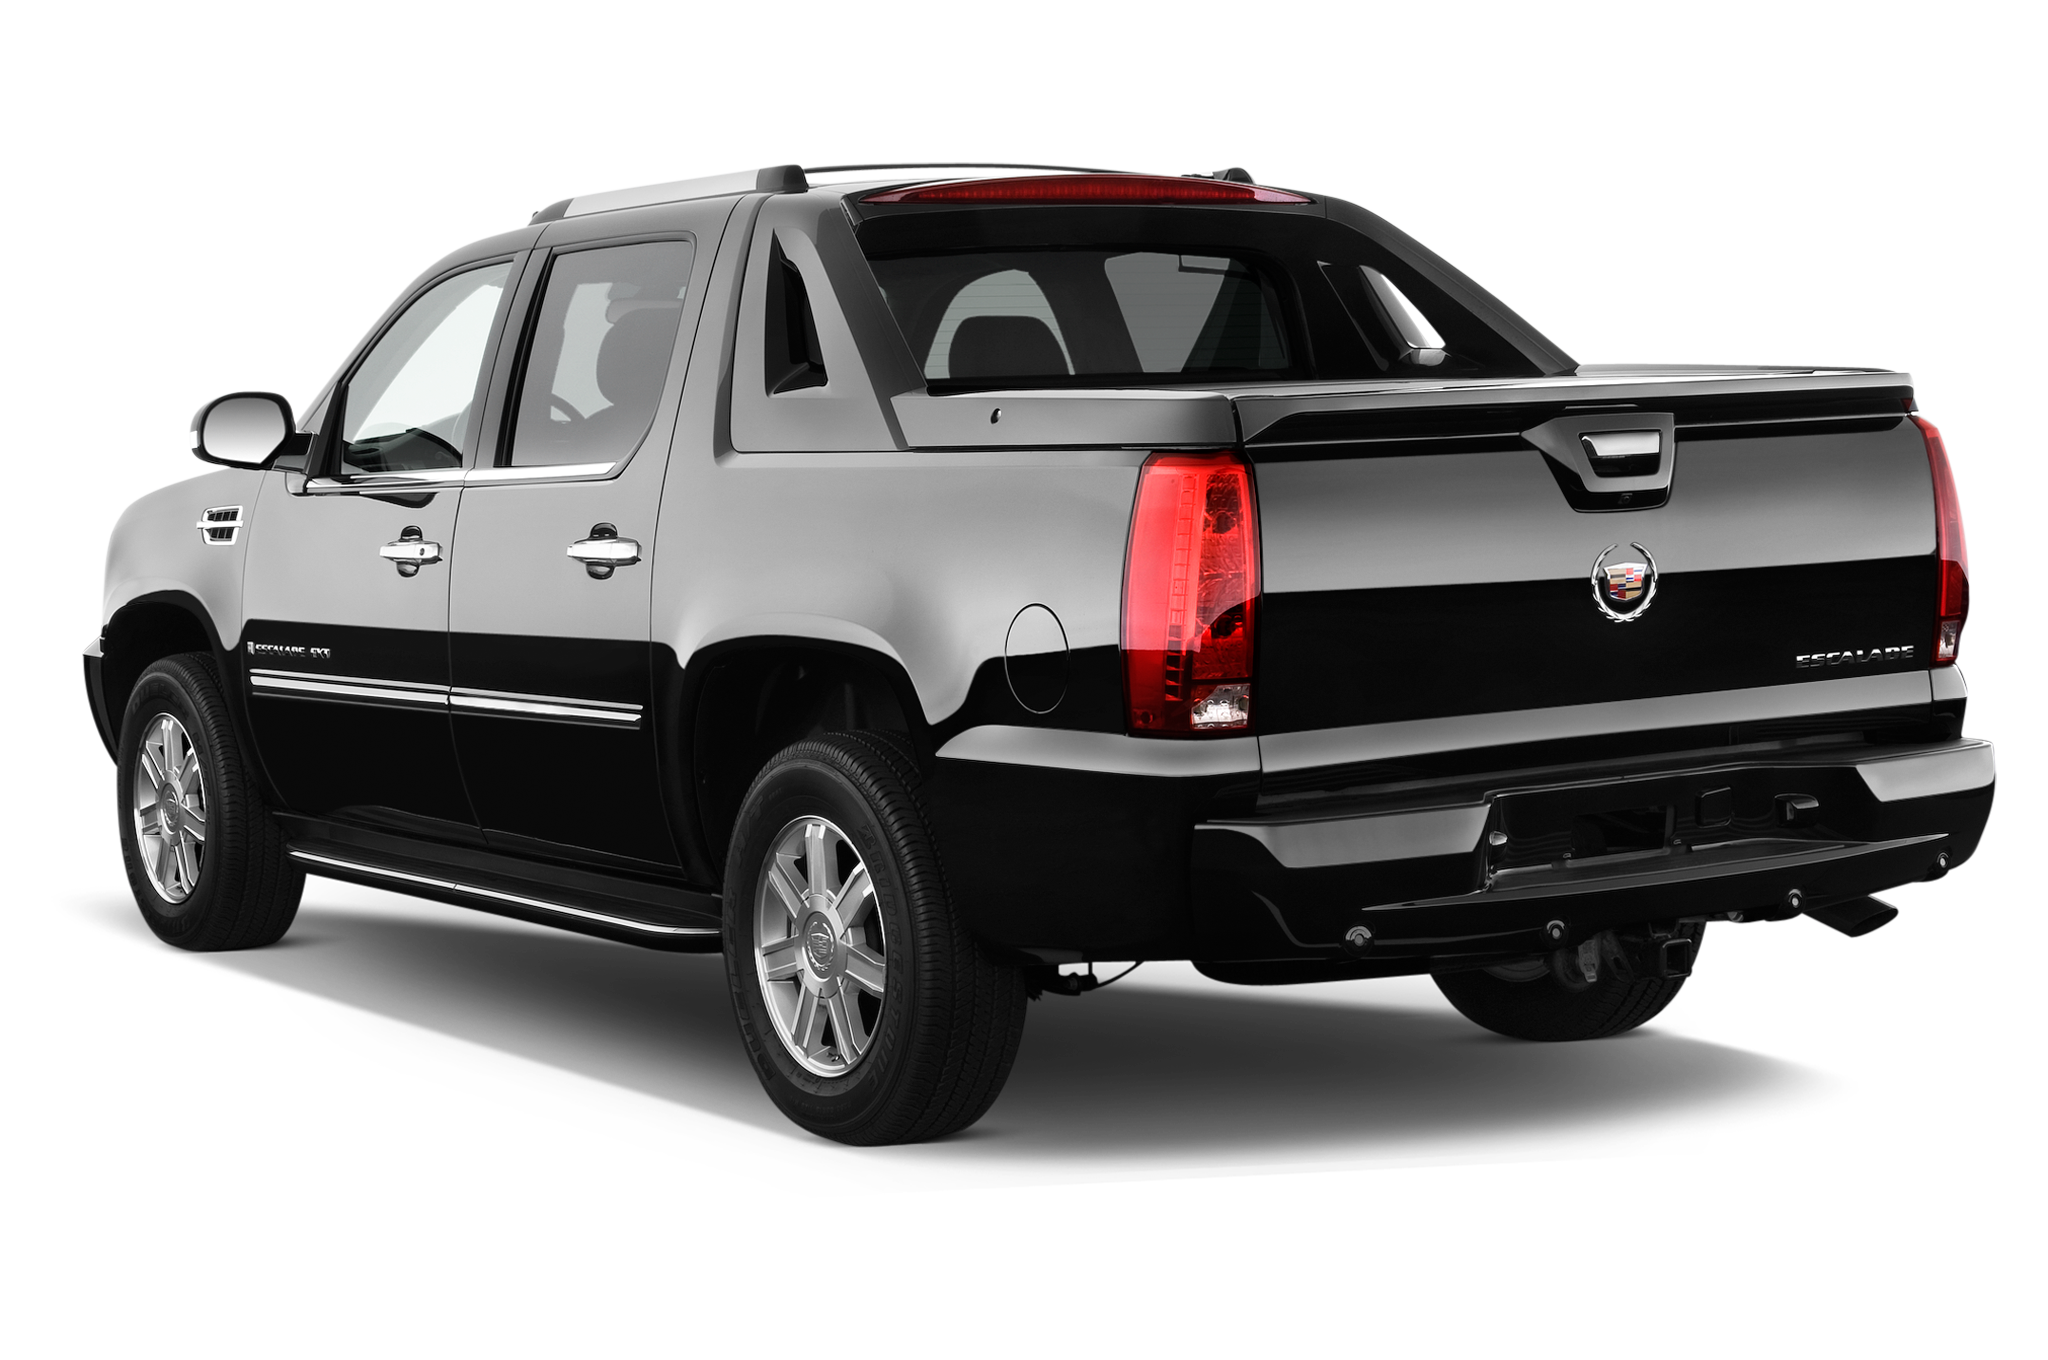 Cadillac Escalade Ext 2012 International Price Overview 200 Esv Prices Specs